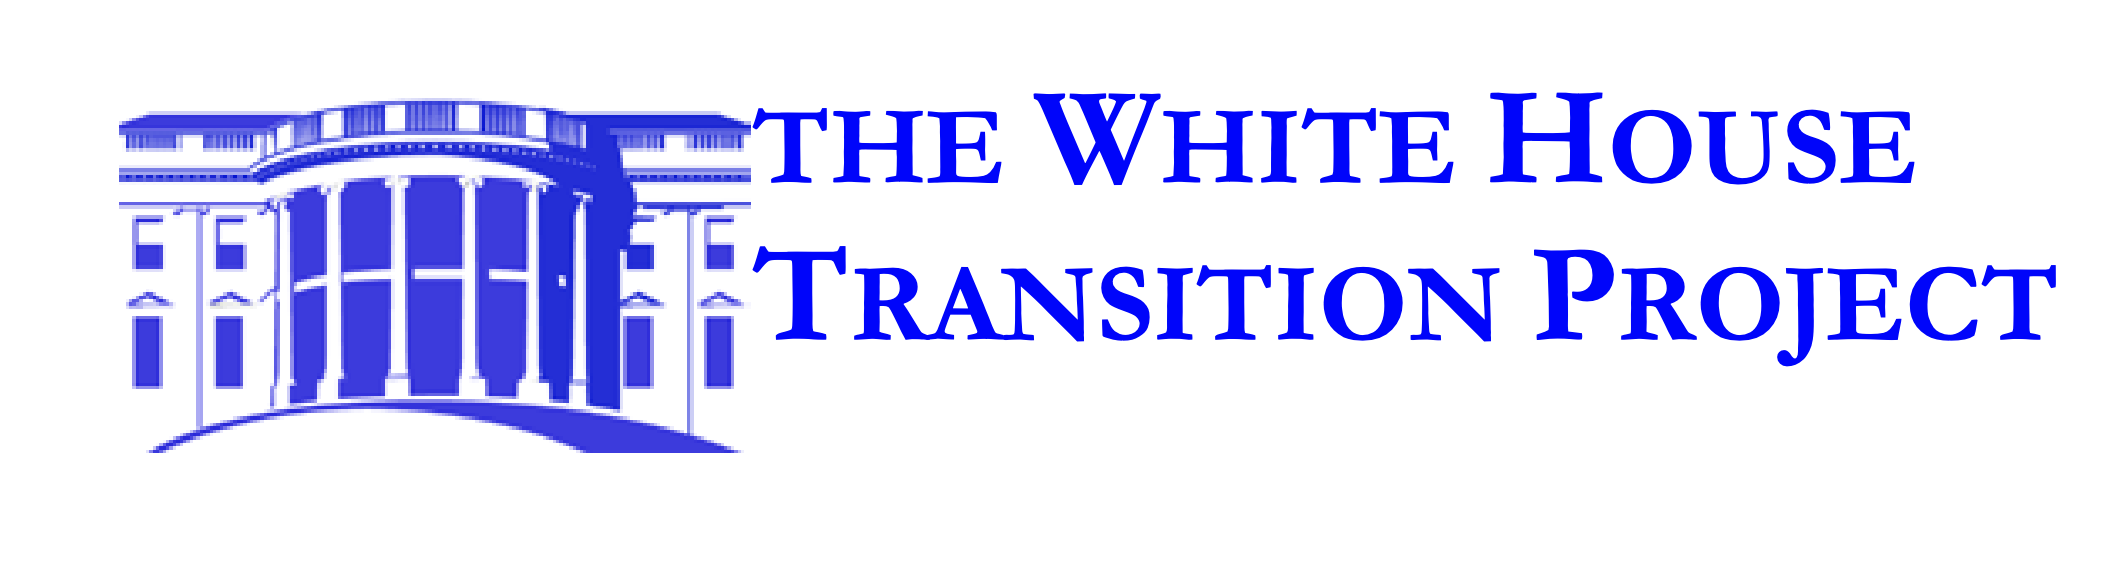 White House Transition Project logo